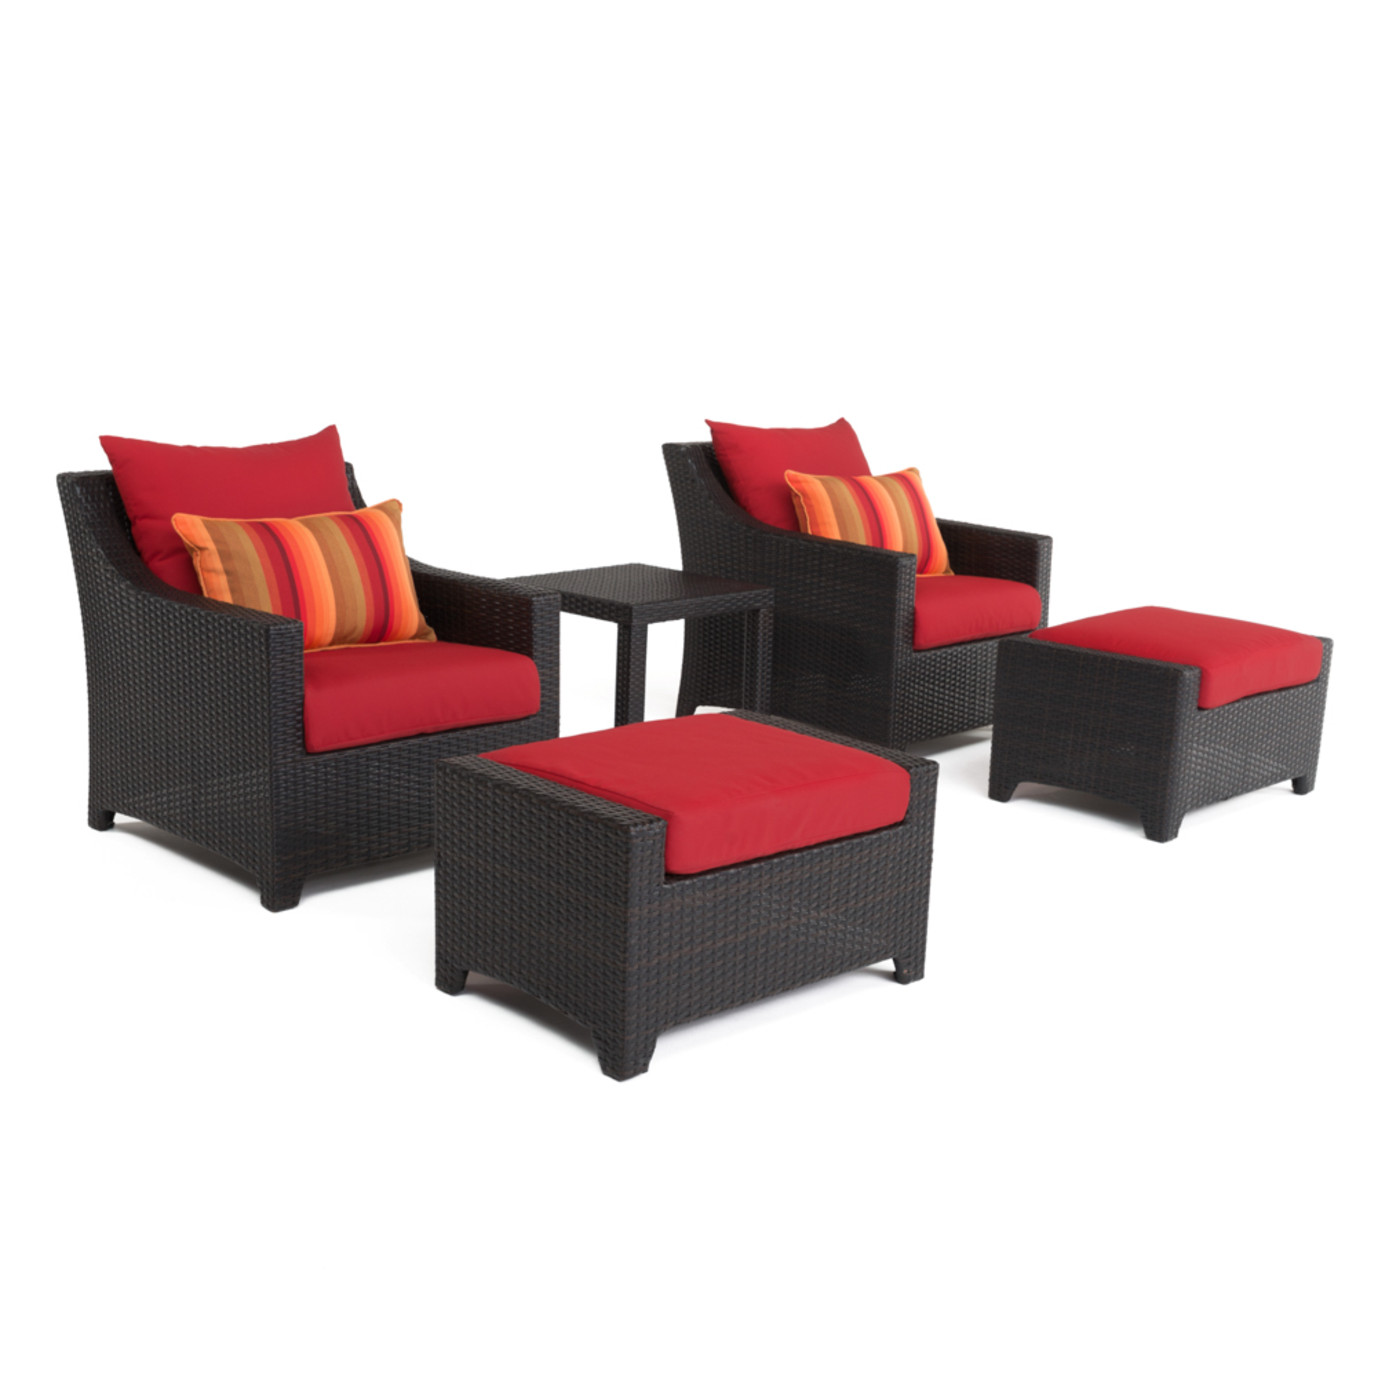 Deco™ 20pc Outdoor Estate Set - Sunset Red